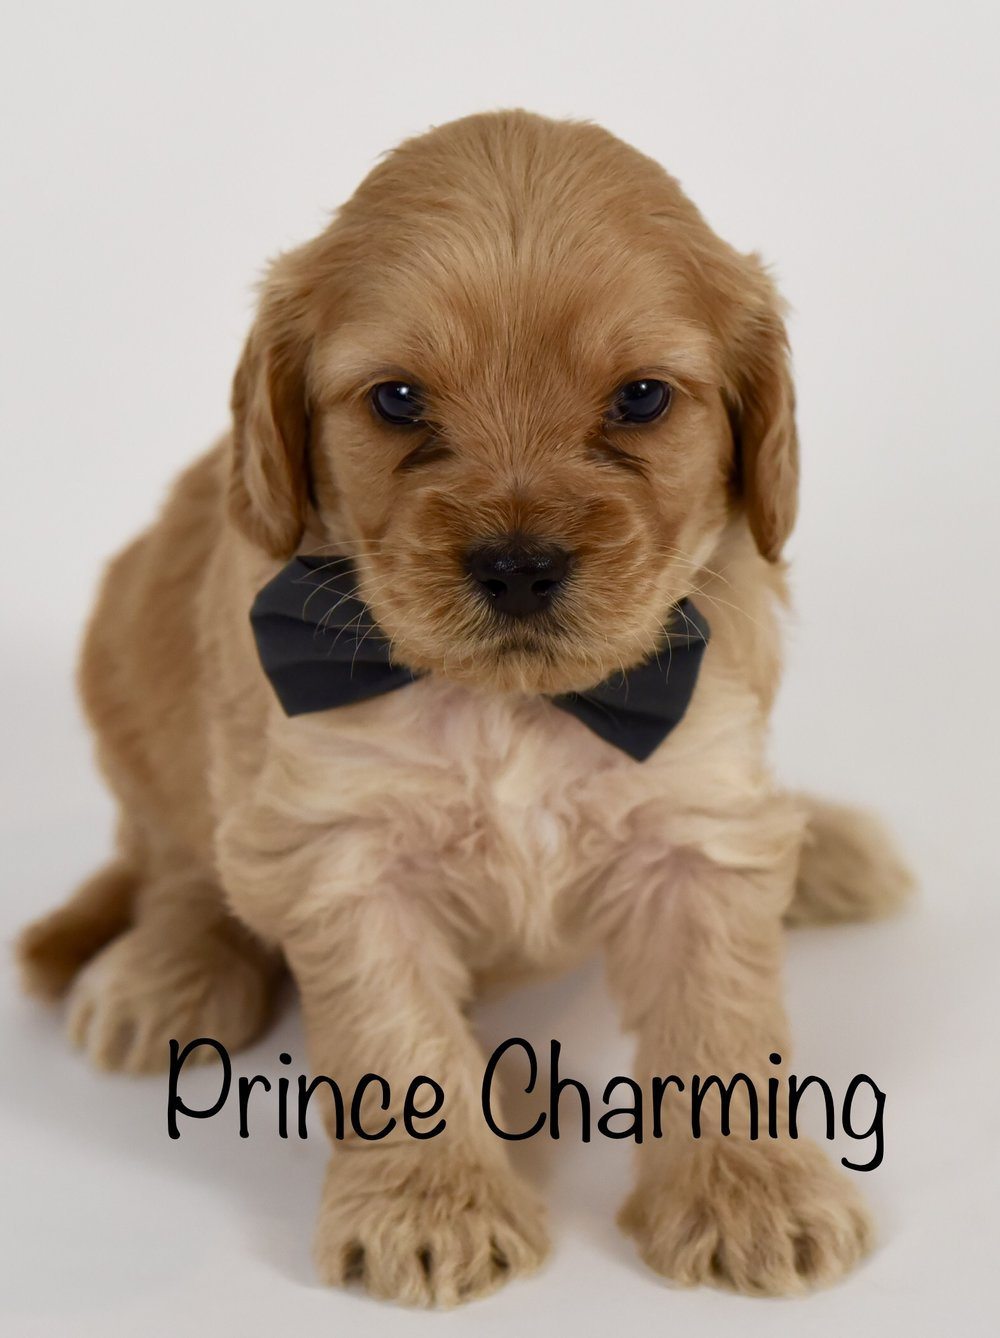 princecharming4weeks.jpg